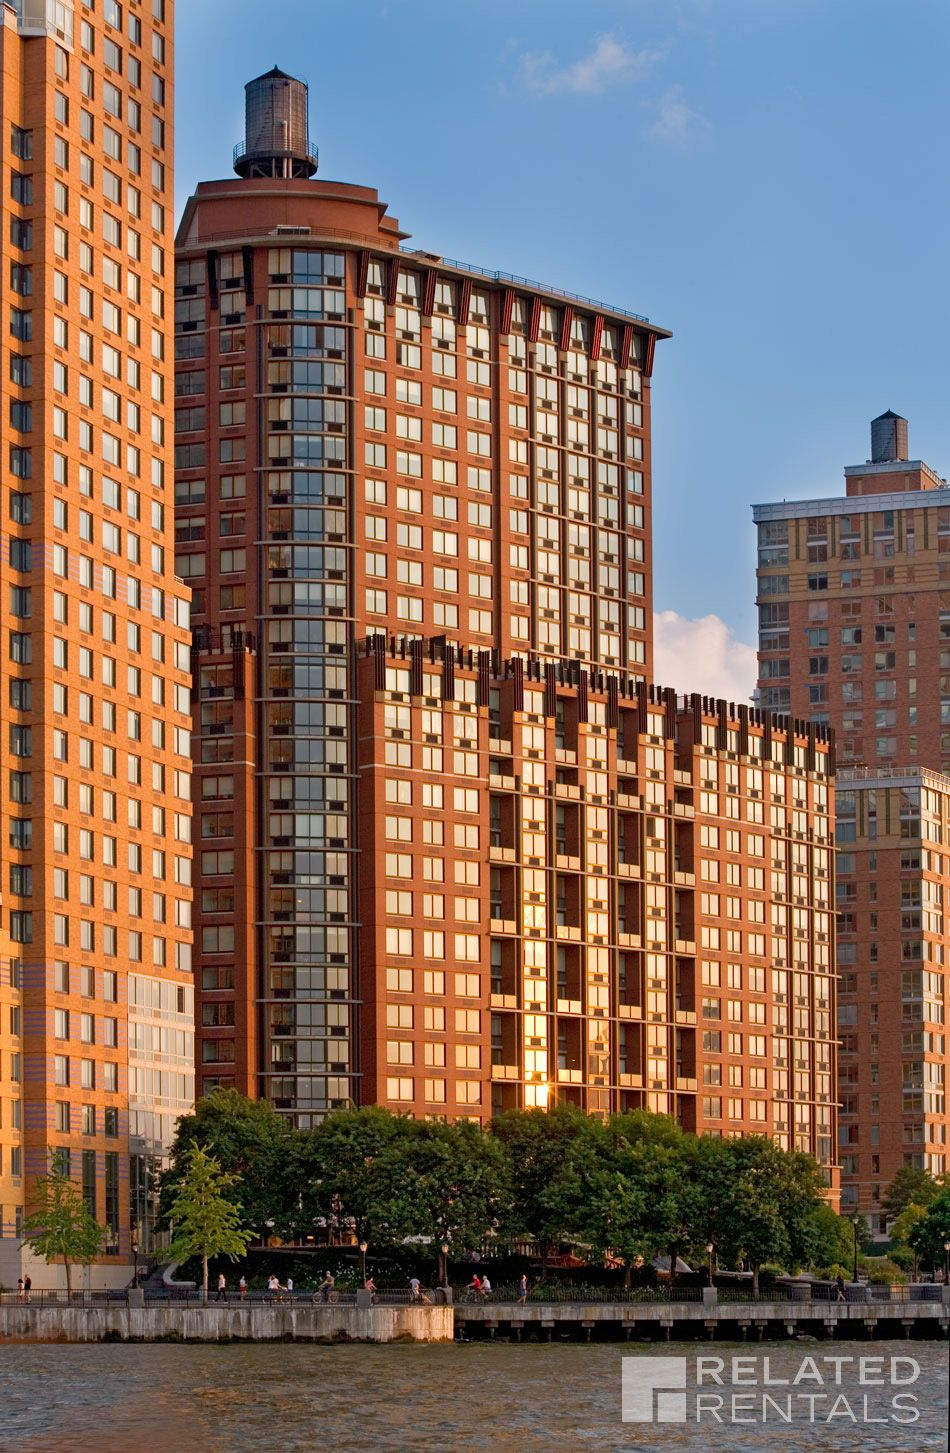 Tribeca Park Related Rentals Nyc